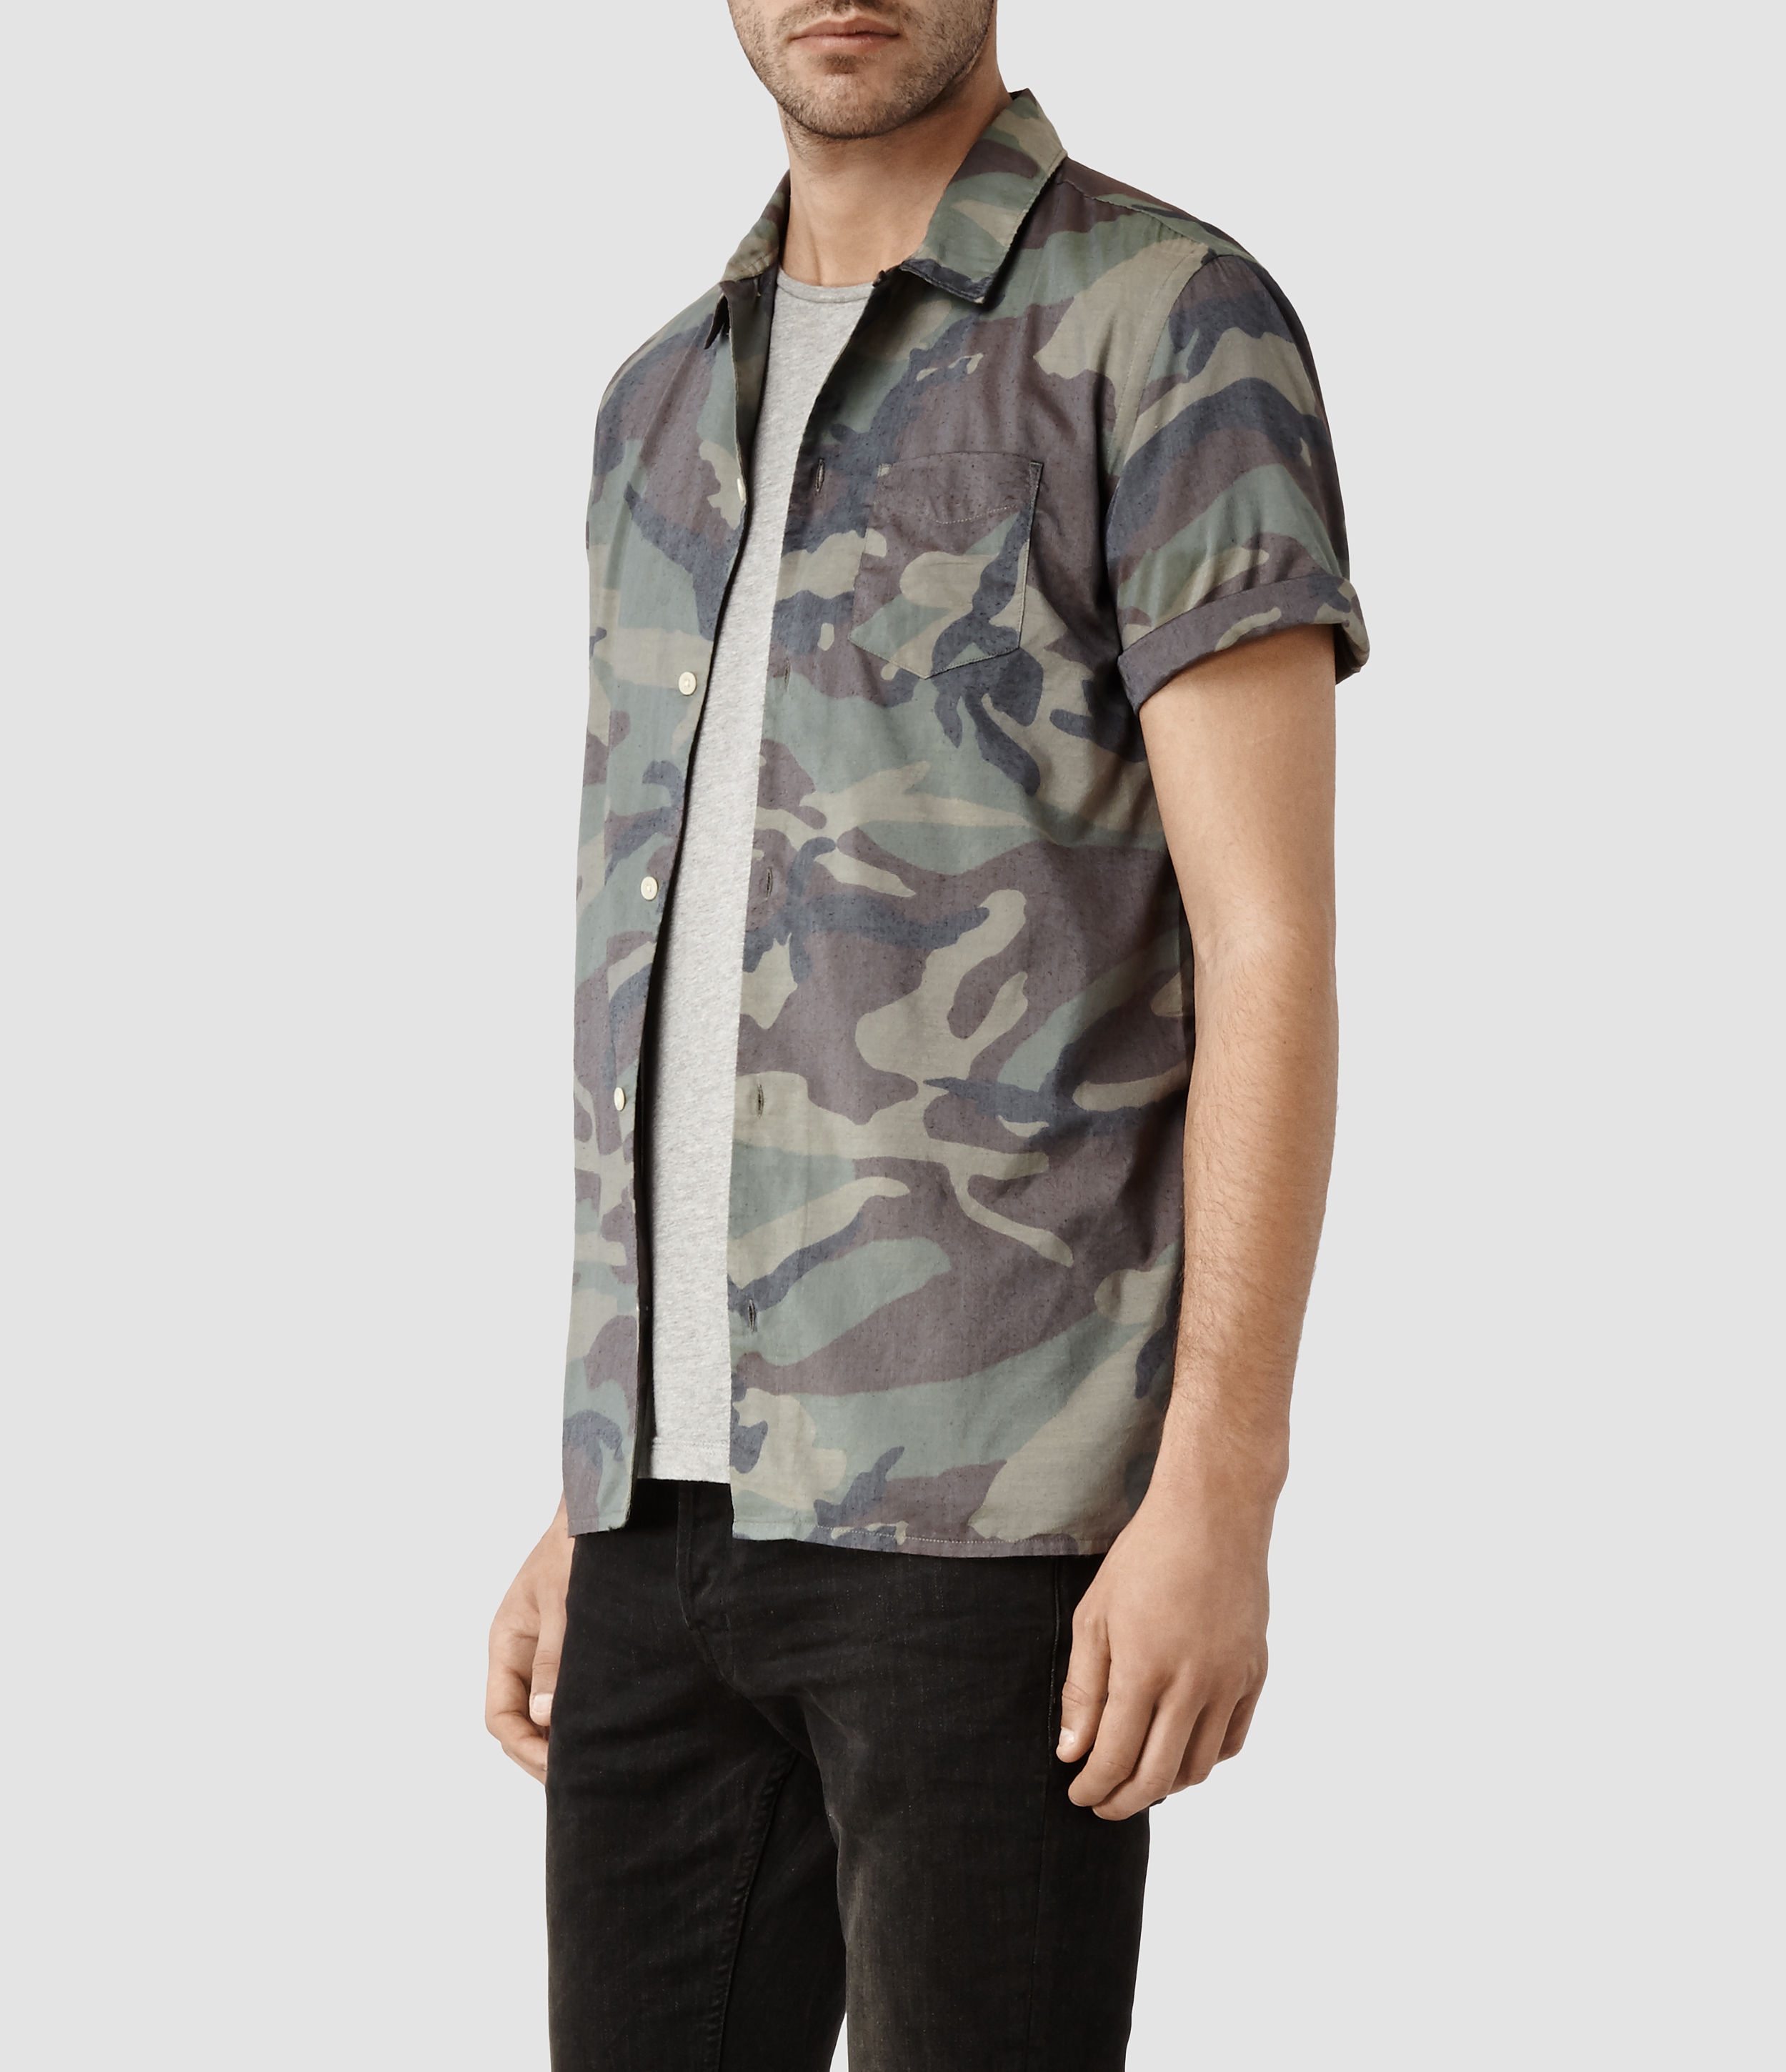 AllSaints Affray Shirt in Green for Men - Lyst 132a8d76e